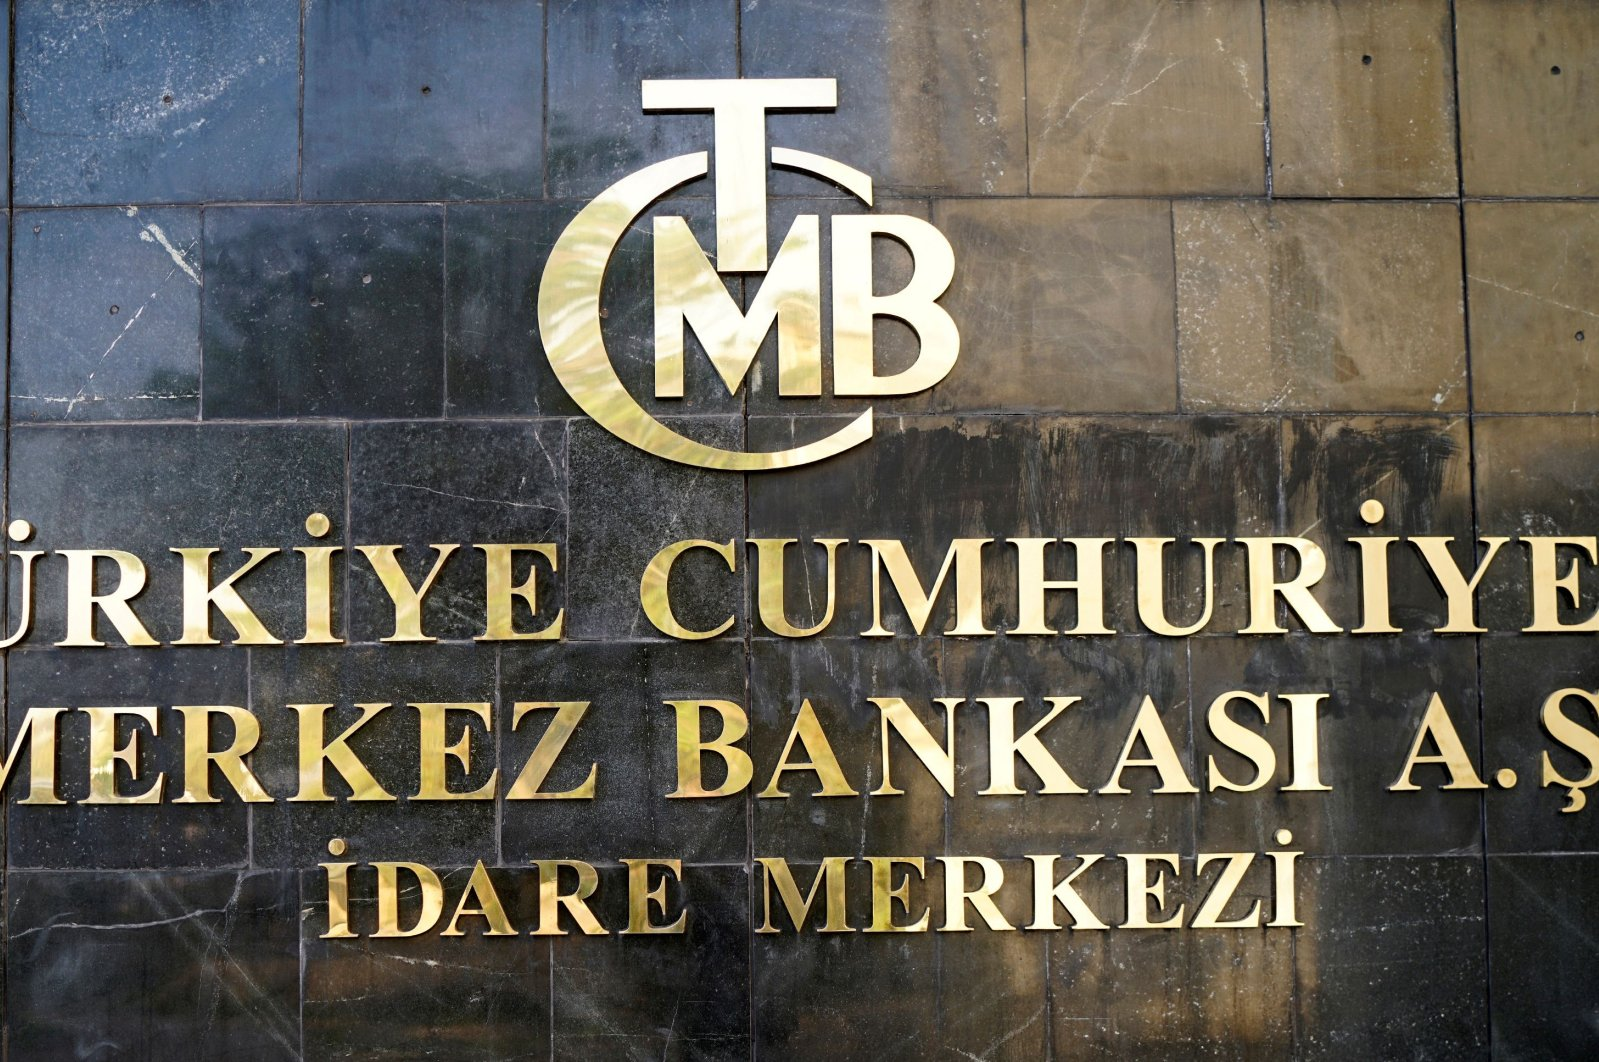 The Central Bank of the Republic of Turkey (CBRT) logo at the entrance of the bank's headquarters in Ankara, Turkey, April 19, 2015. (Reuters Photo)